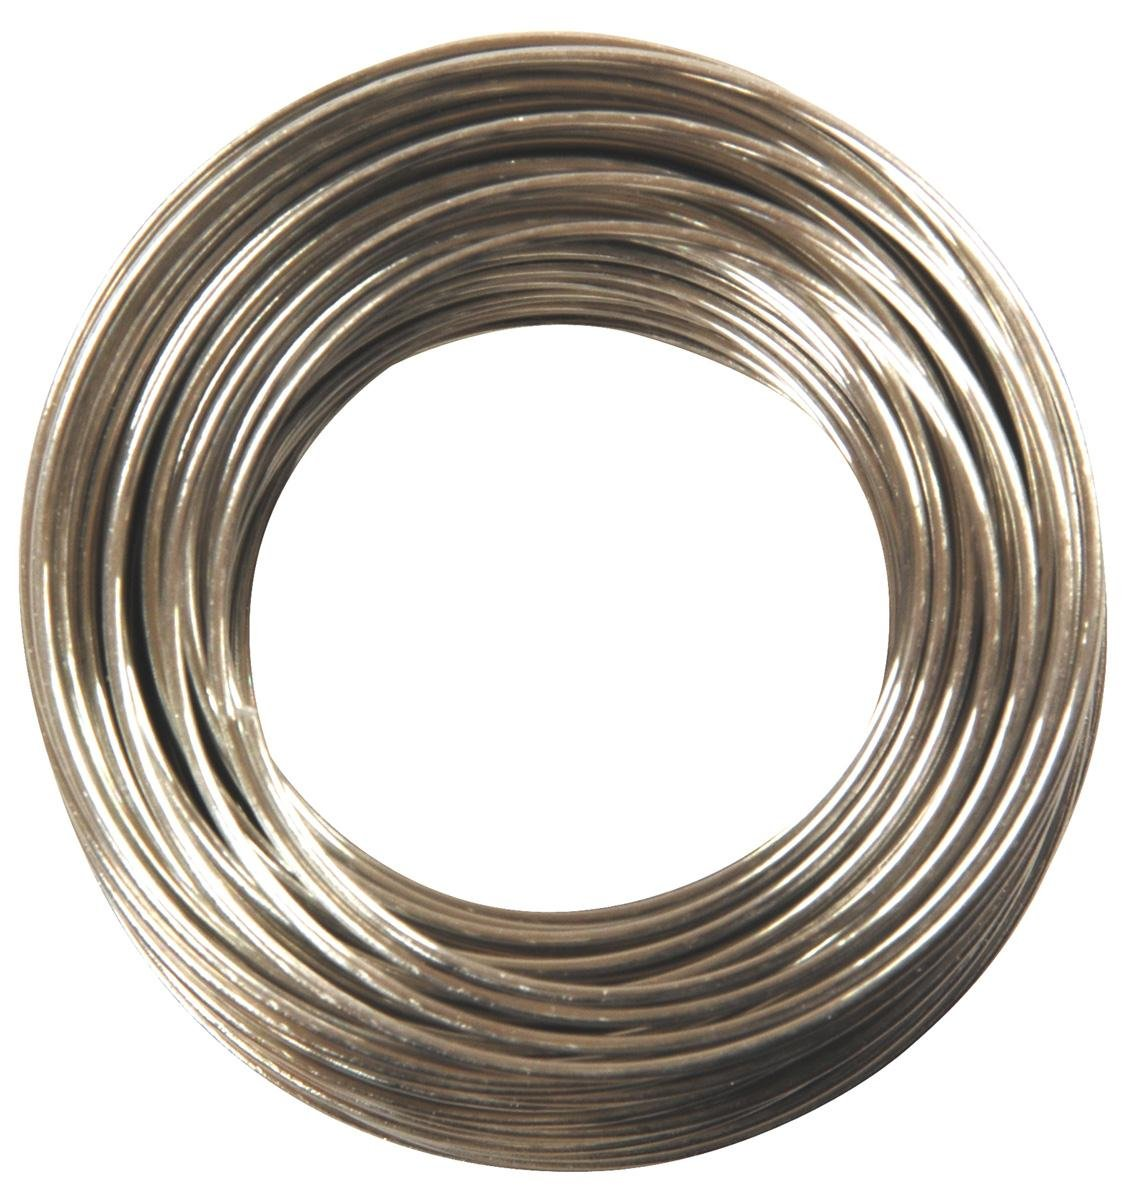 Ook 50176 50\' 19 Gauge Aluminum Hobby Wire - Electrical Wires ...